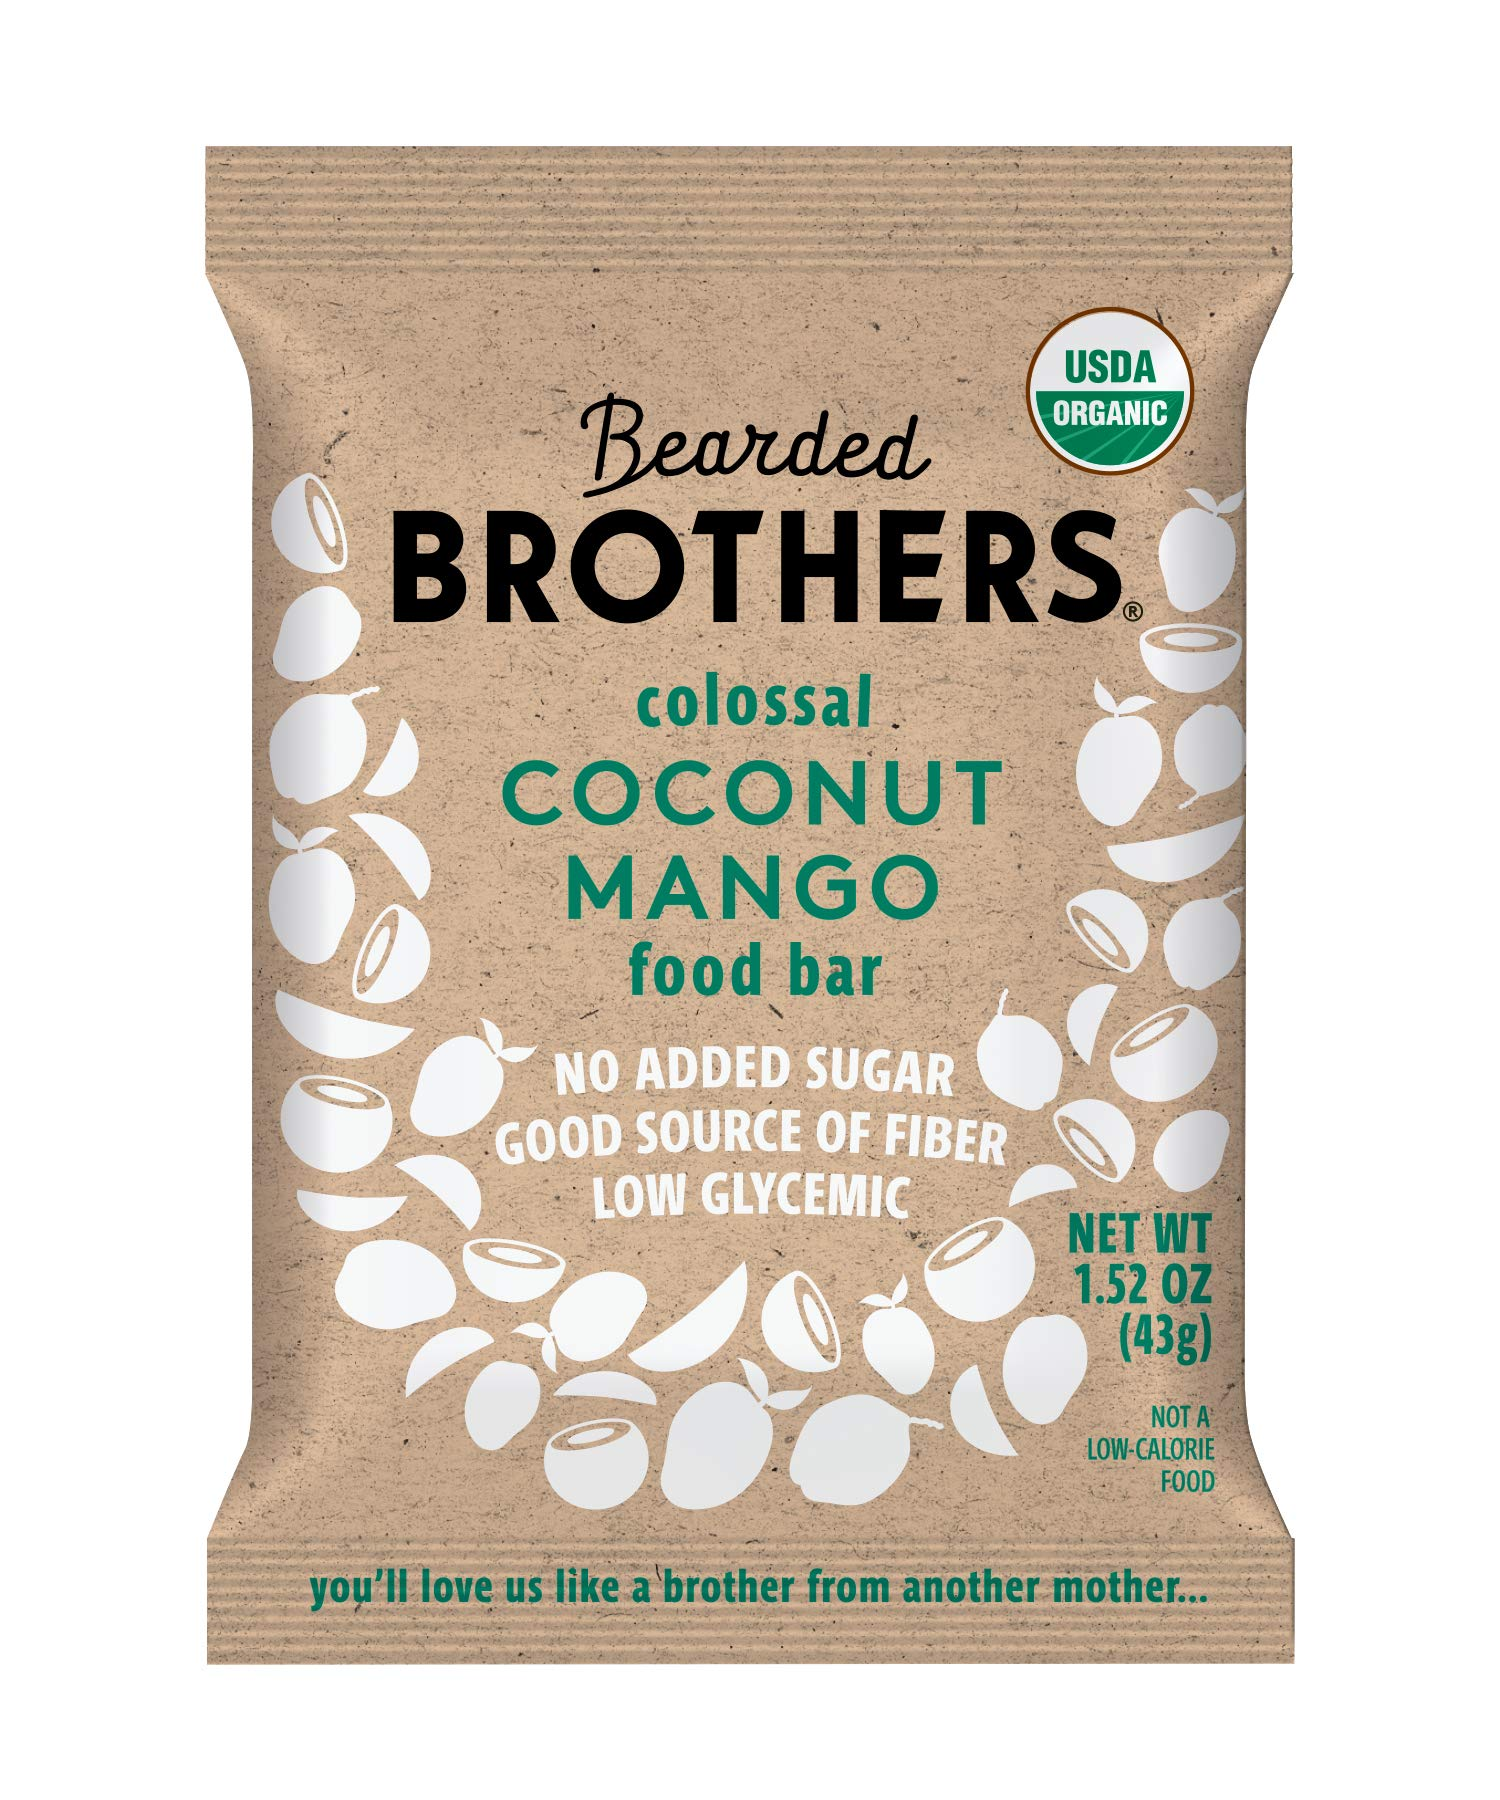 Bearded Brothers Vegan Organic Energy Bar   Gluten Free, Paleo and Whole 30   Soy Free, Non GMO, Low Glycemic, Packed with Protein, Fiber + Whole Foods   Coconut Mango   12 Pack